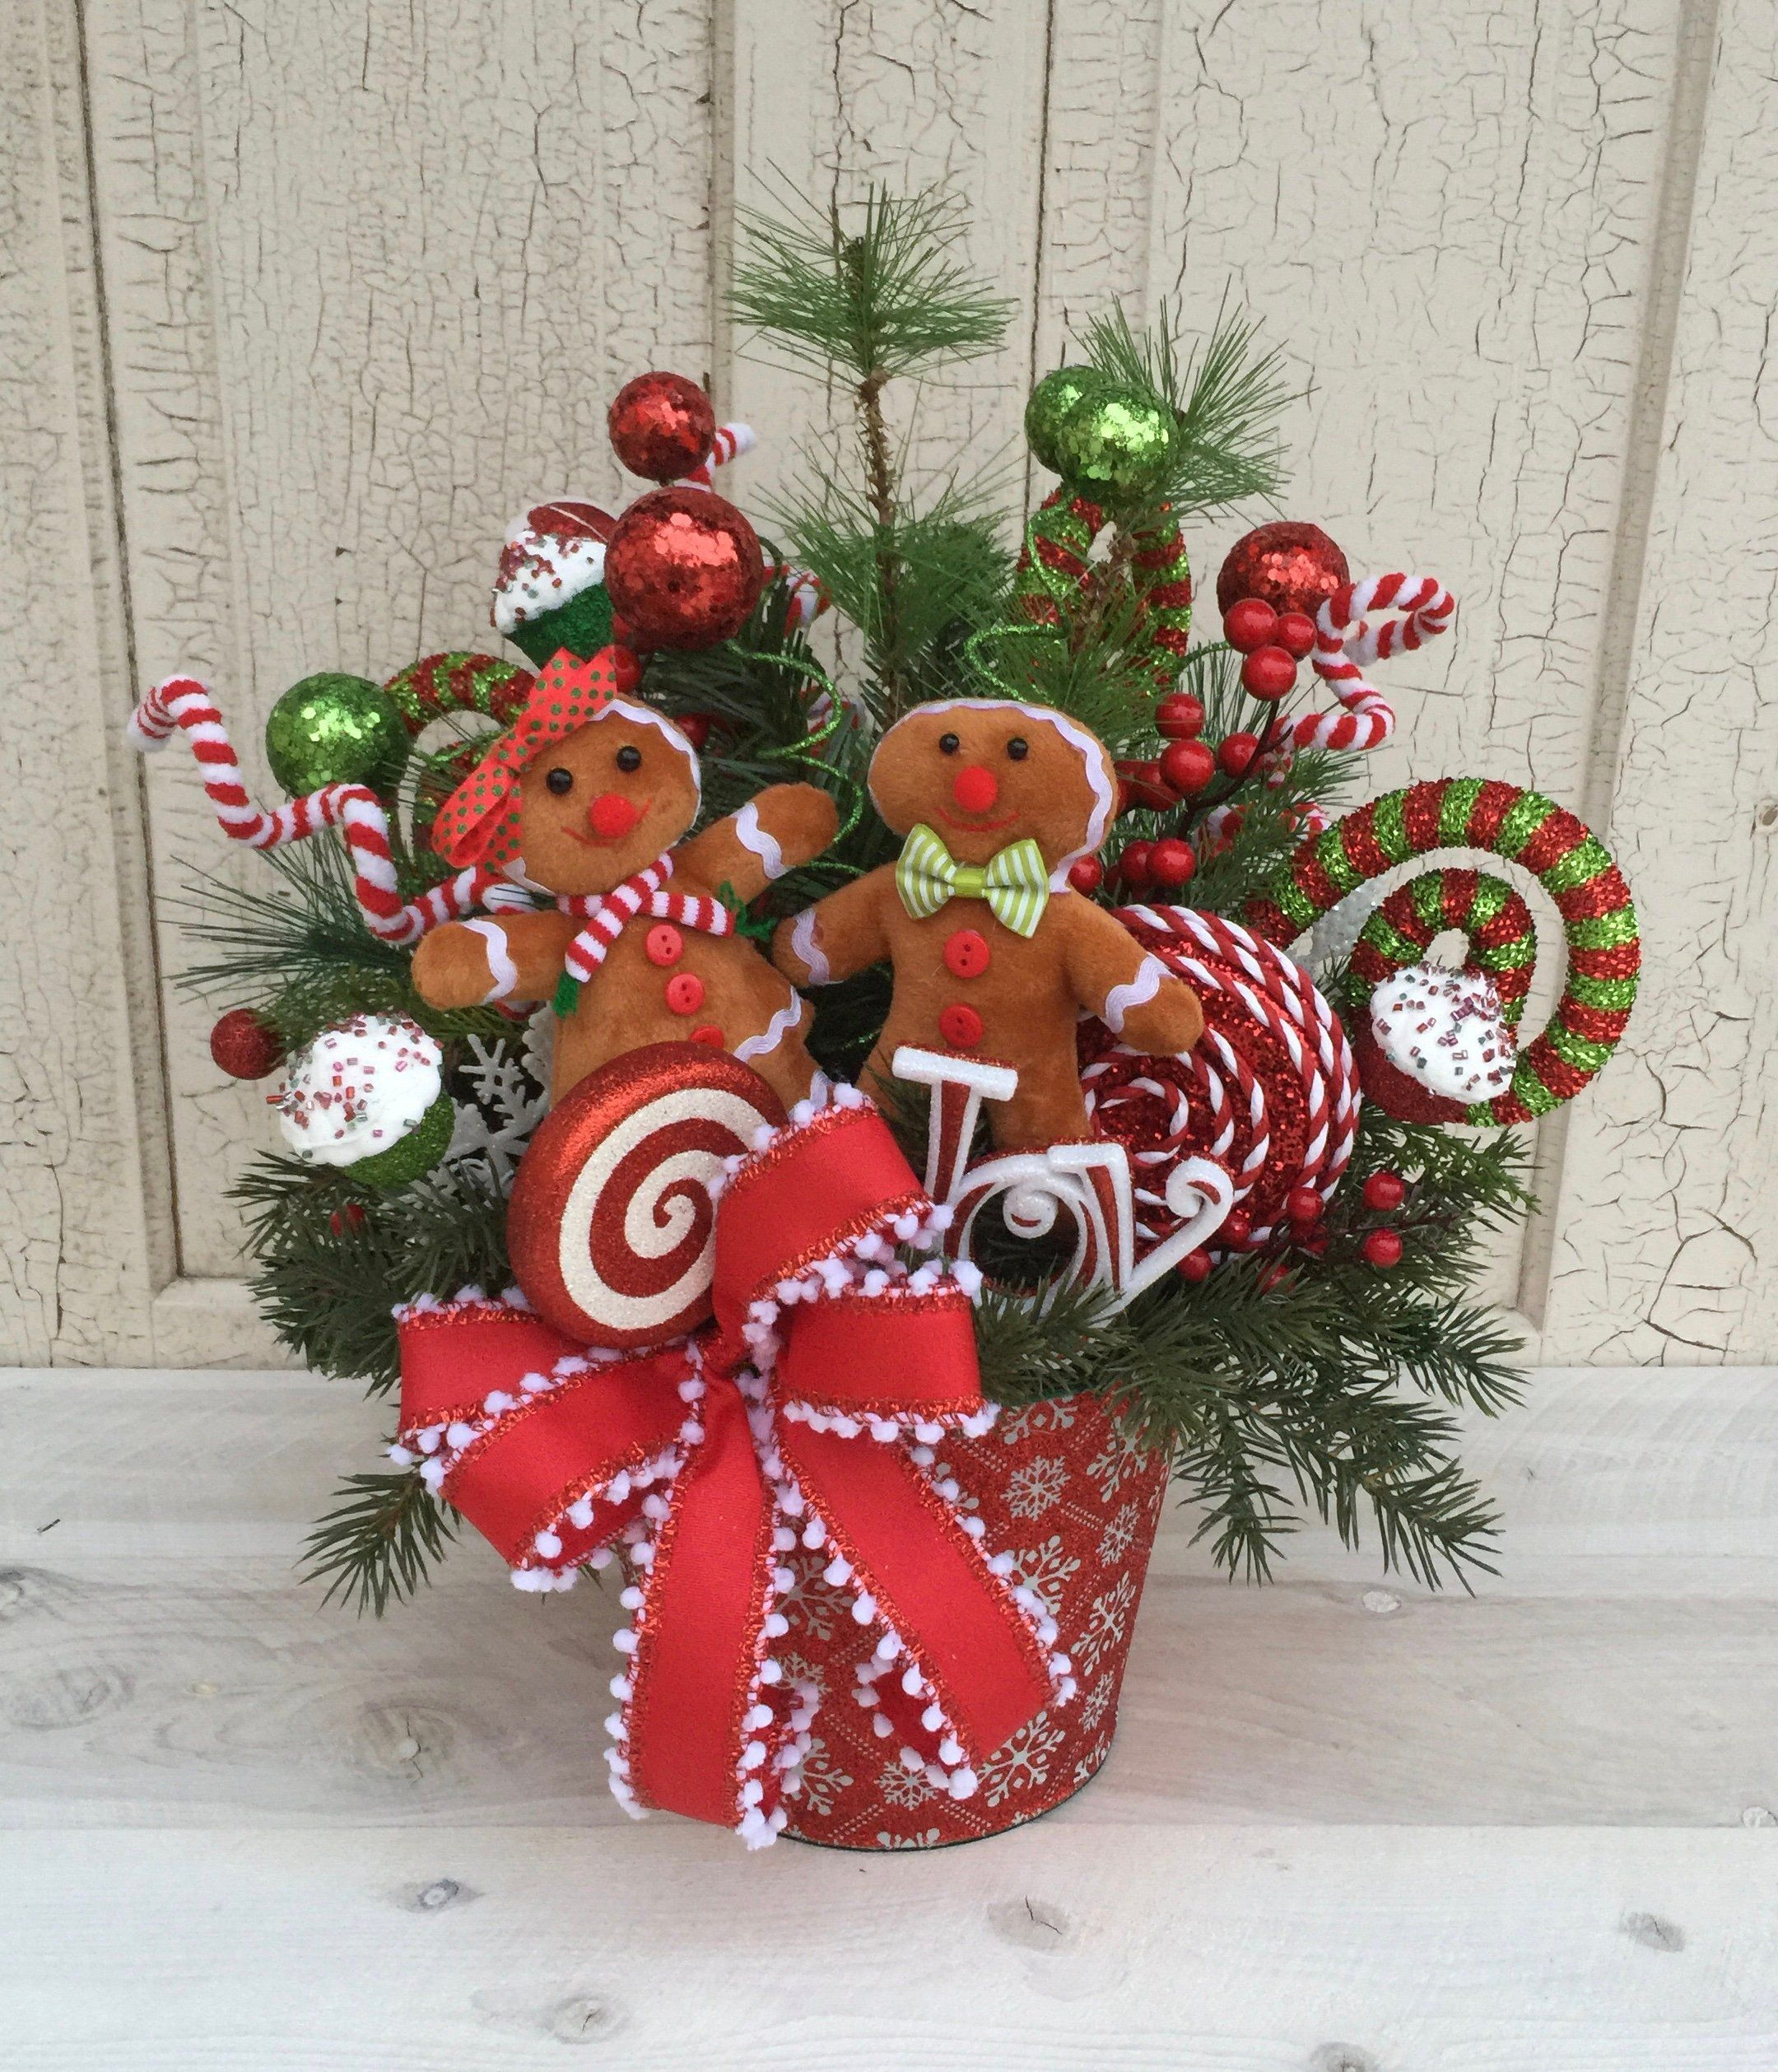 Christmas Gingerbread Centerpiece Christmas Table Centerpiece Christmas Floral Arr Christmas Flower Arrangements Christmas Floral Arrangements Christmas Floral